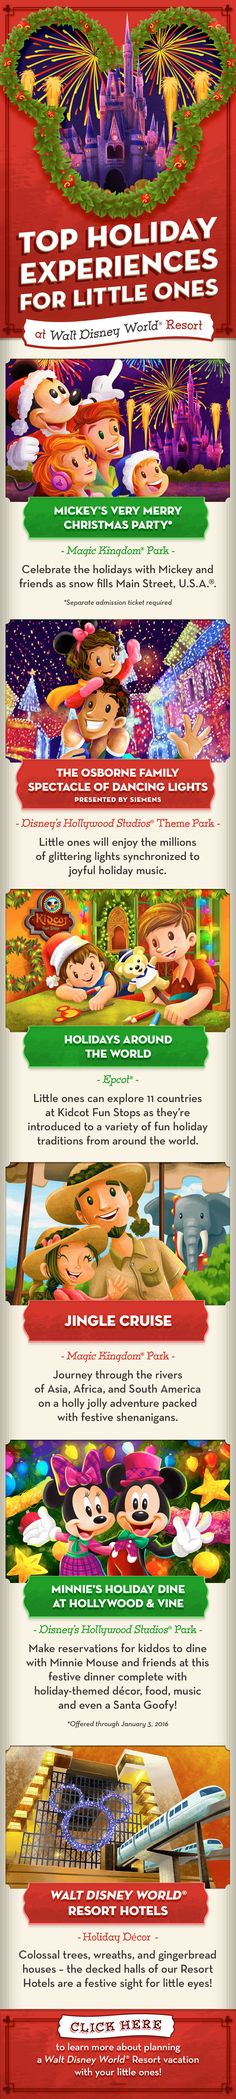 Learn more about fun and unique Holiday experiences in 2015 for you and your little ones on your Walt Disney World vacation! From Mickey's Very Merry Christmas Party to holiday decor at Walt Disney World Resort hotels, you're sure to have a merry holiday visit! (Admission to Mickey's Very Merry Christmas Party requires a separately priced ticket. Ticket valid during specific event dates, hours and subject to availability.)